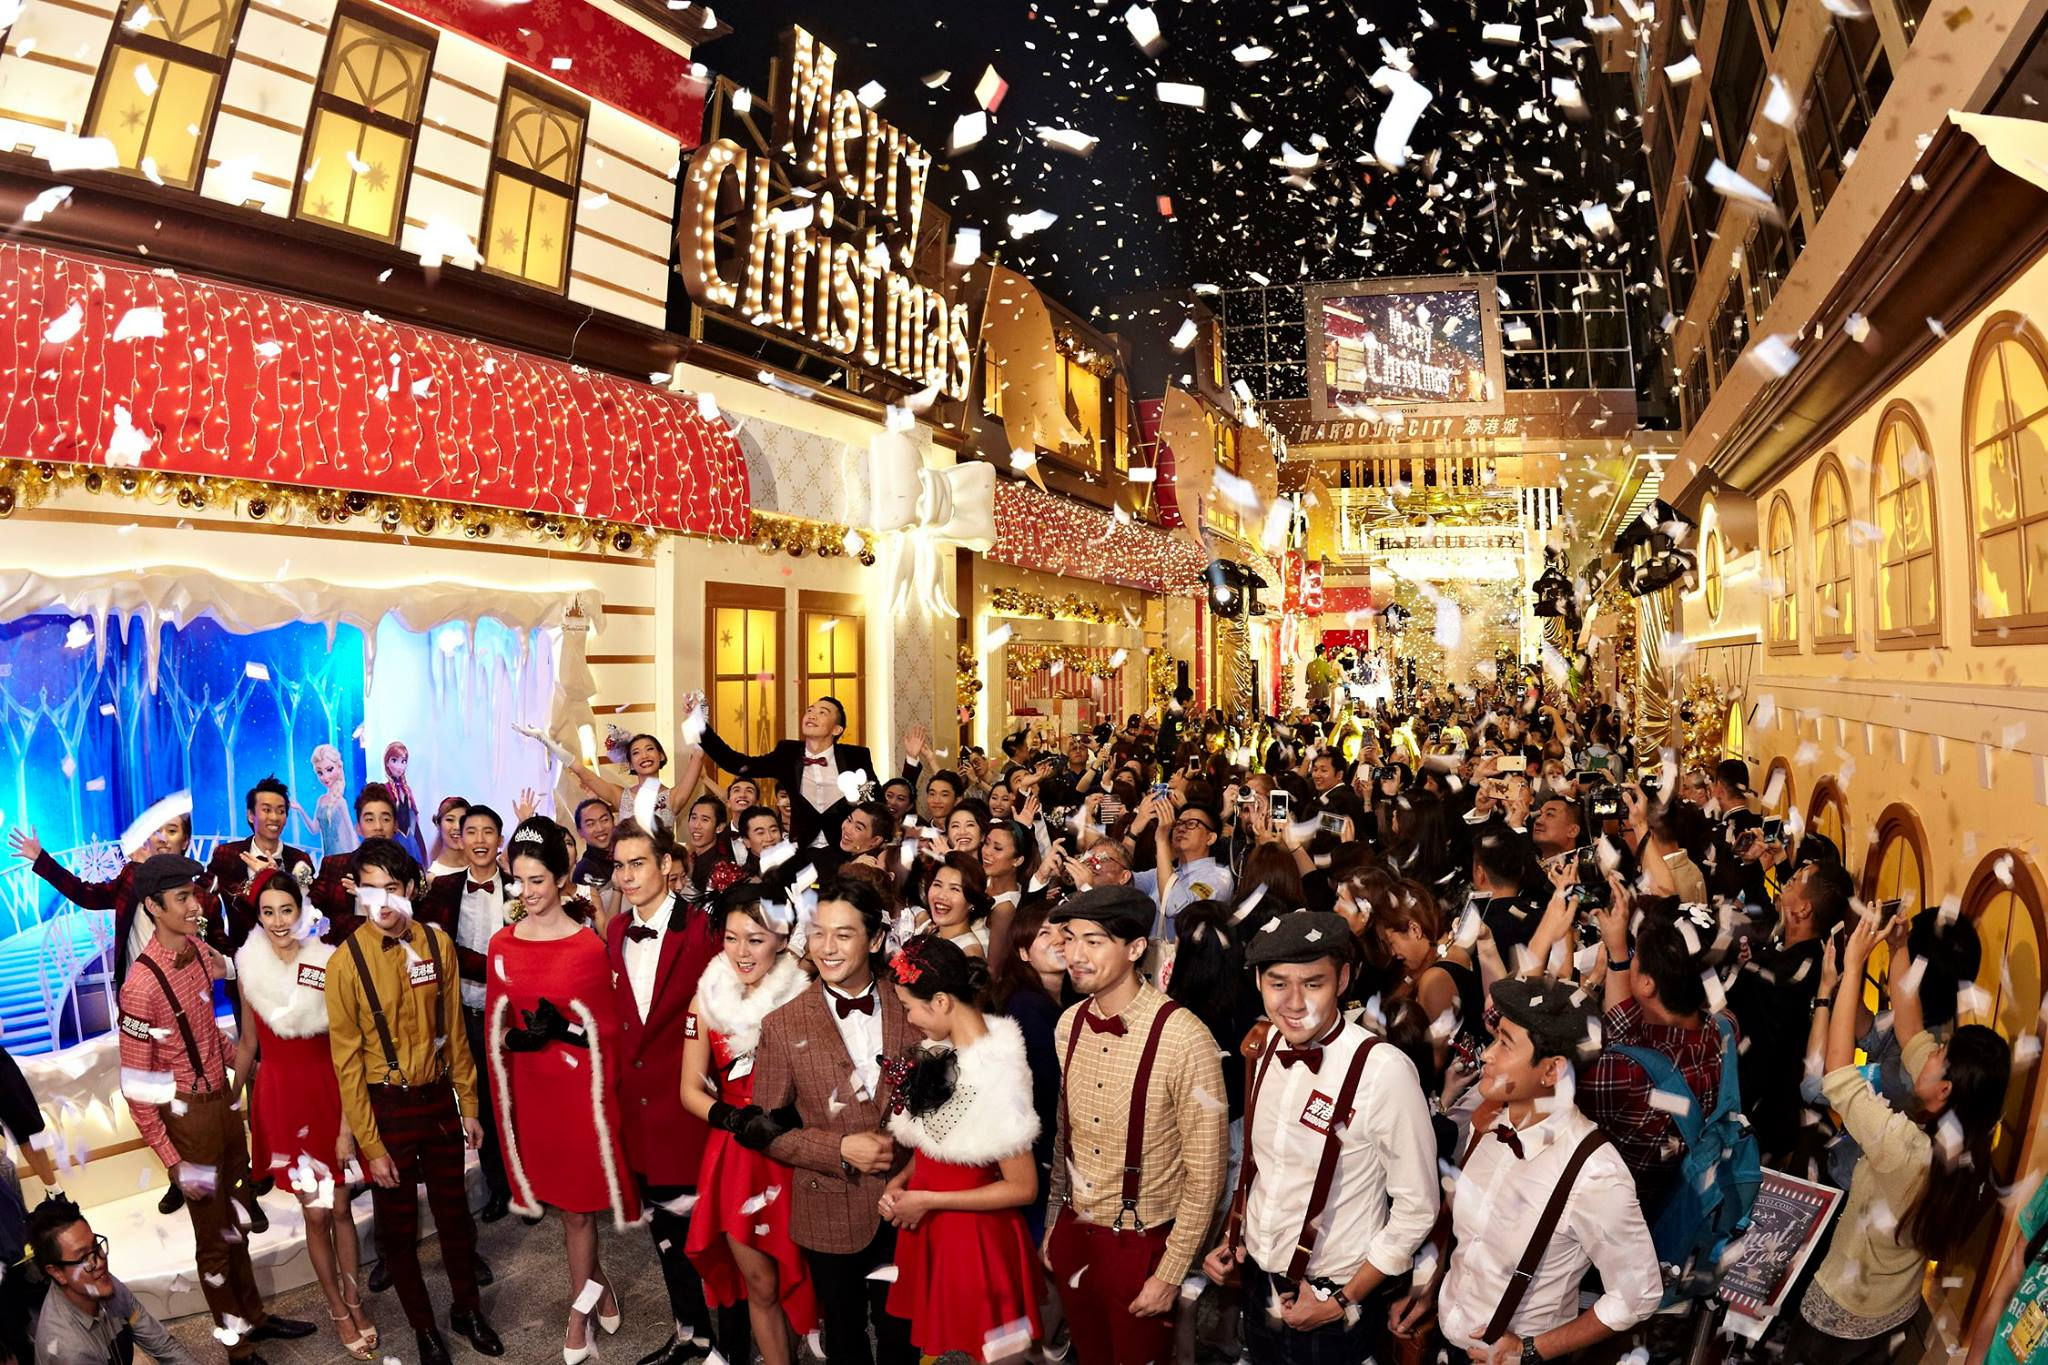 christmas with diseney friends in hong kong 2015diseney in christmas 2015merry christmas - Disney Christmas 2015